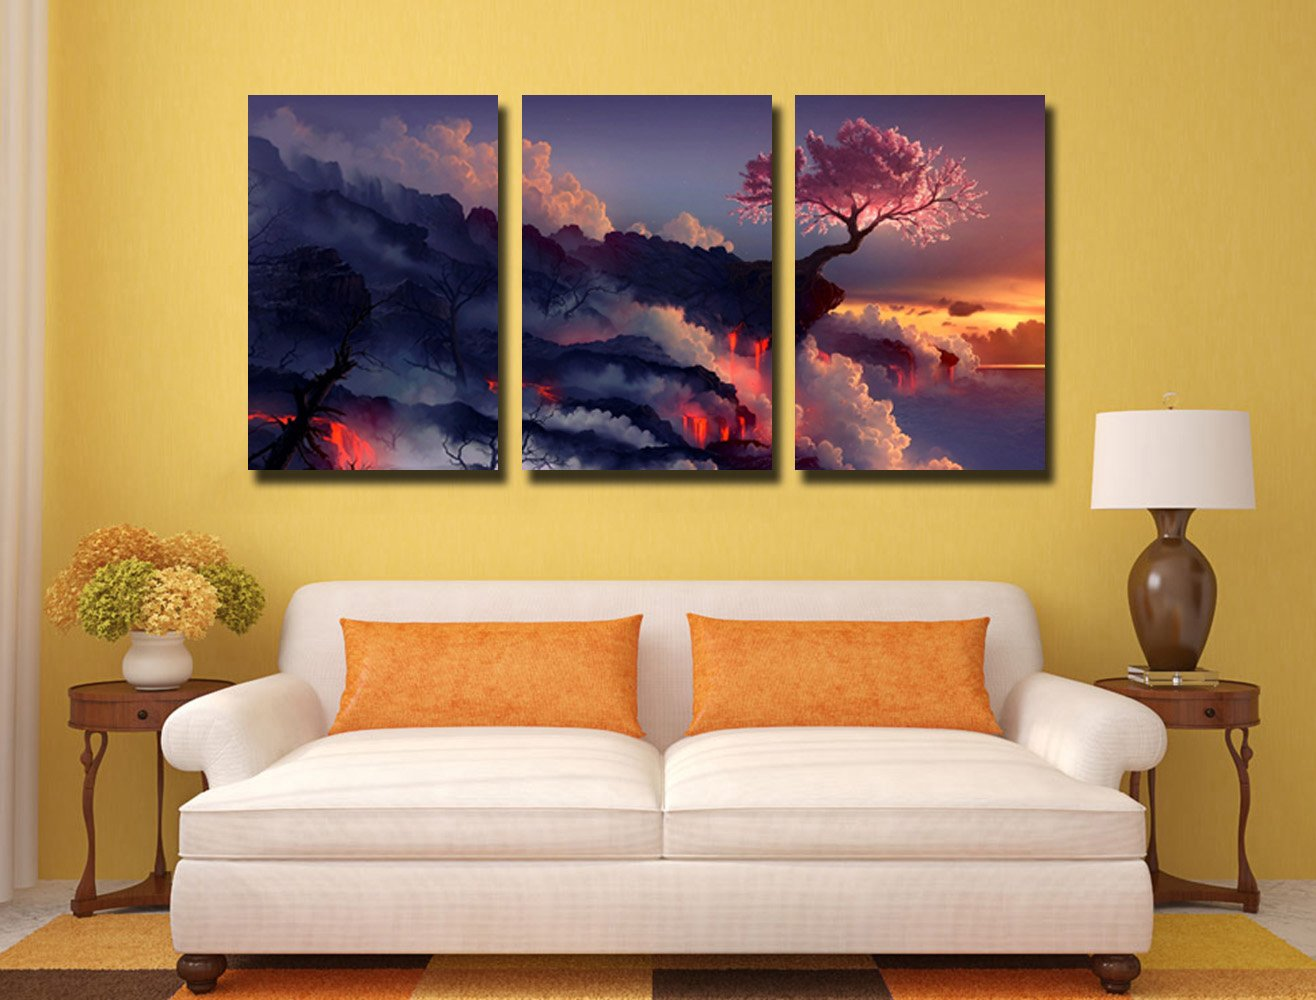 Amazon.com: Gardenia Art Magic Cherry Tree in Volcanoes Canvas ...